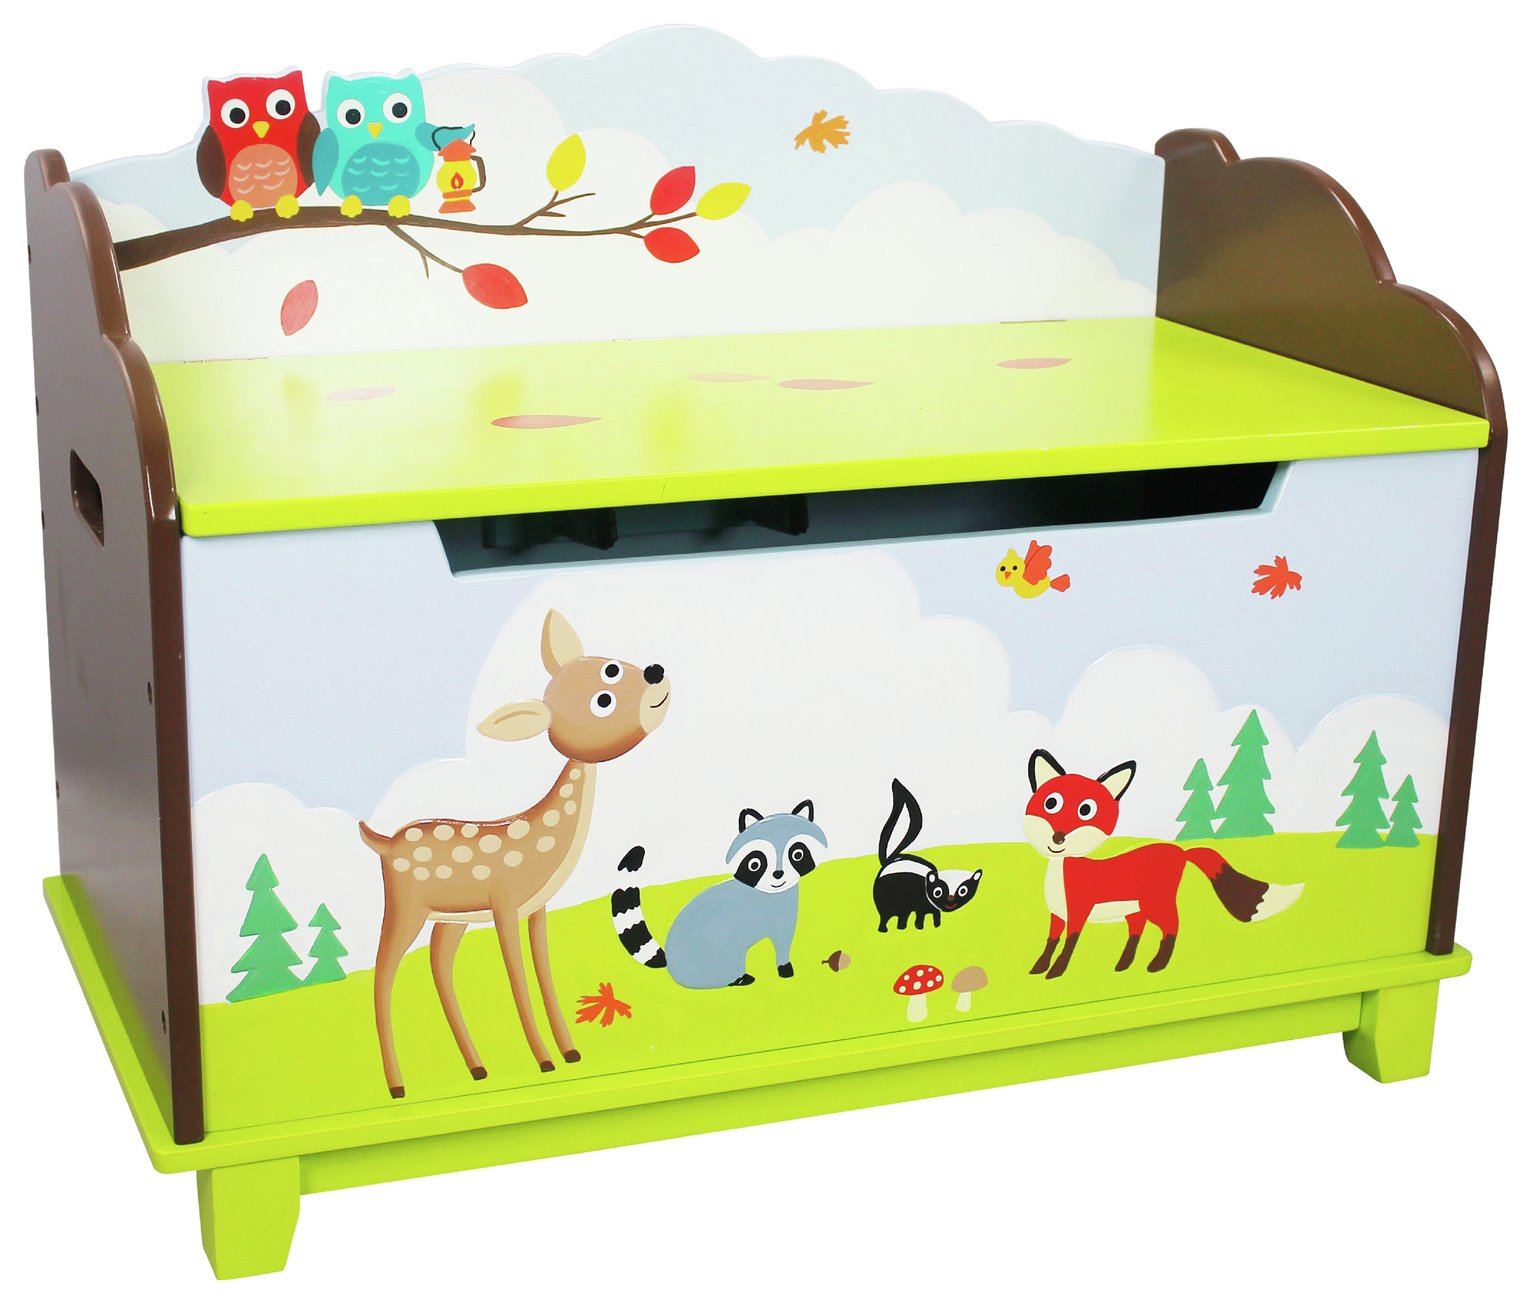 Image of Fantasy Fields Enchanted Woodland Toy Box.